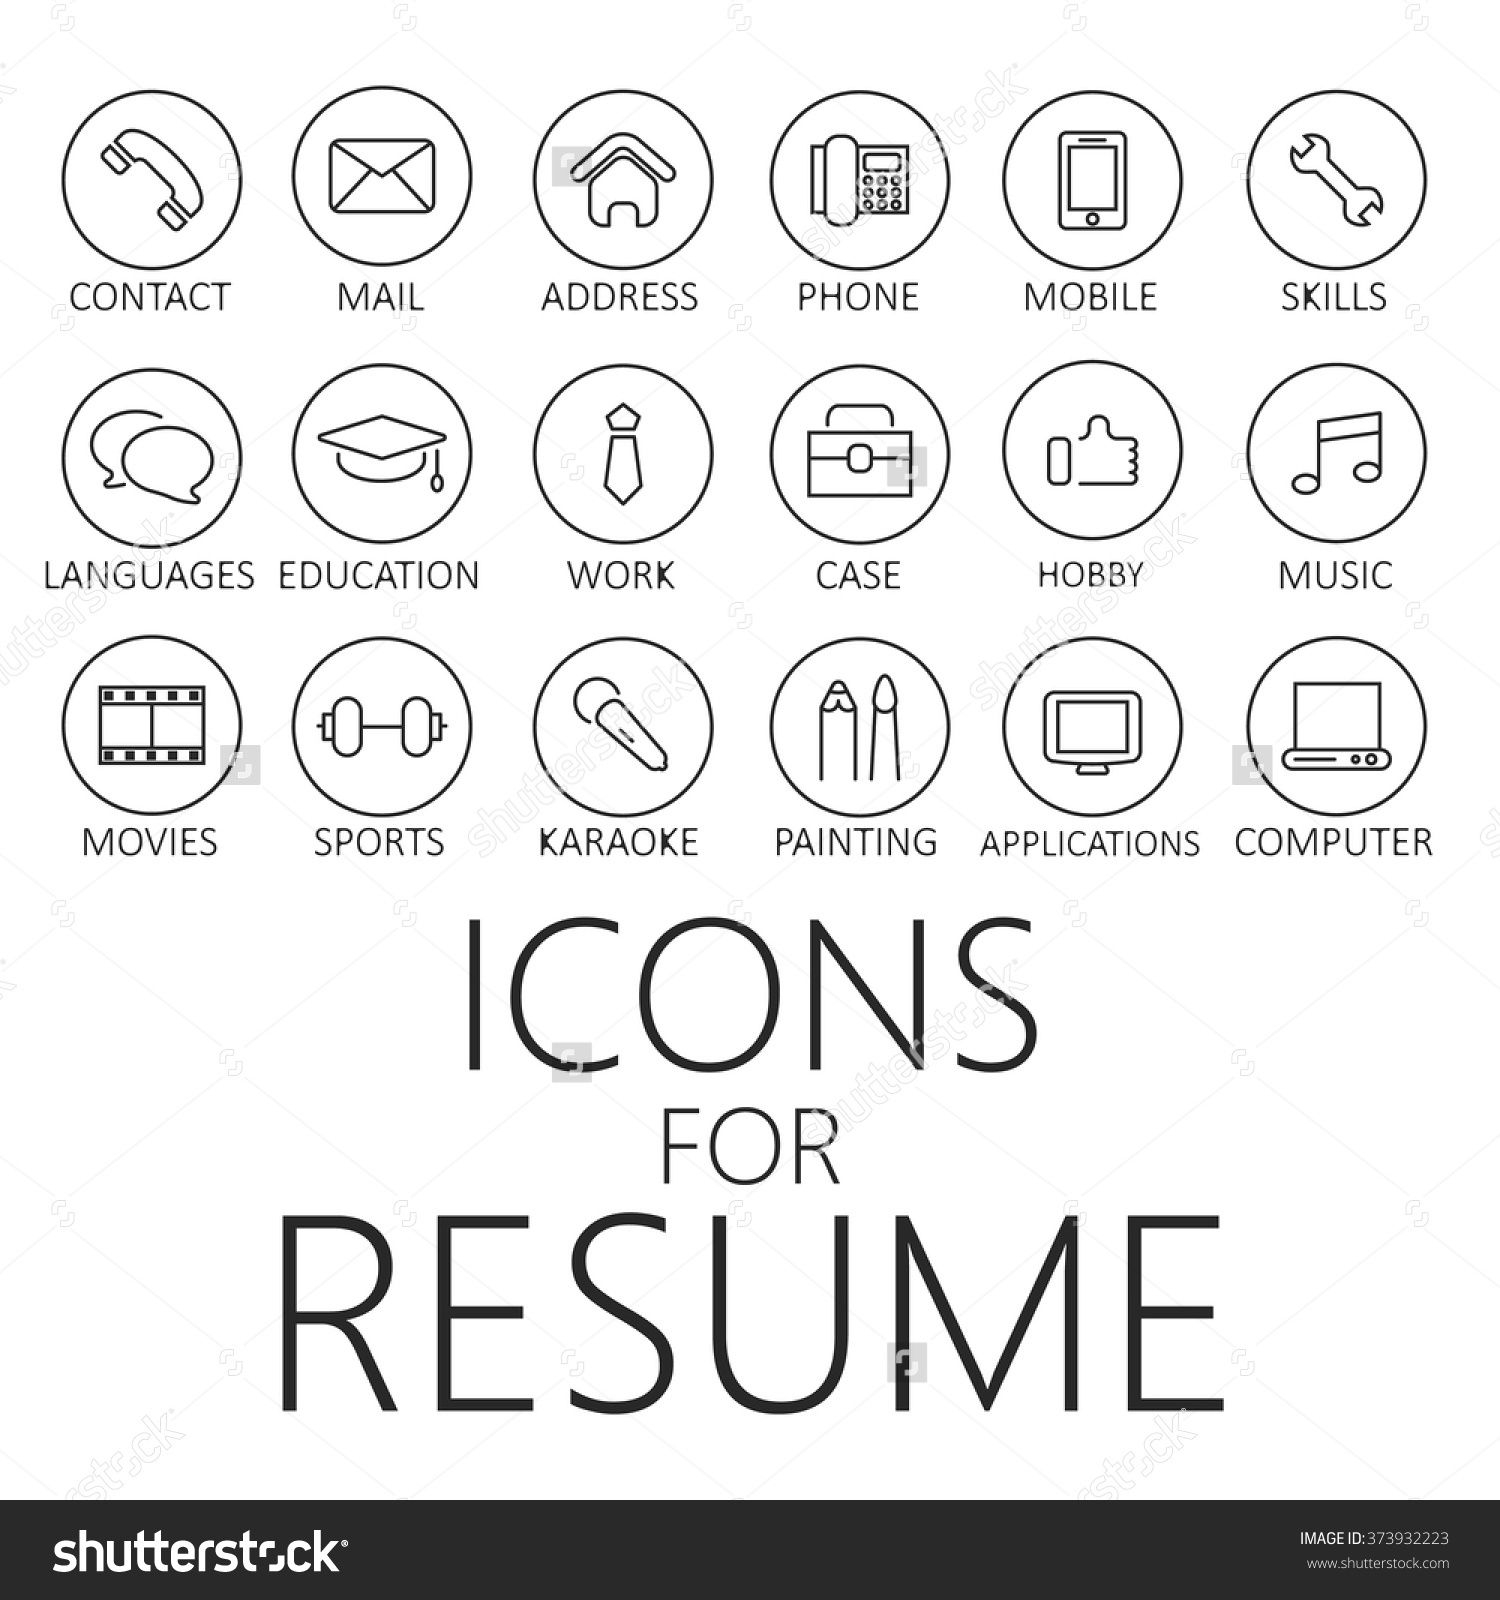 Icons For Resume.Thin Line Icons Pack For Cv Resume Job Icons Icones Cv